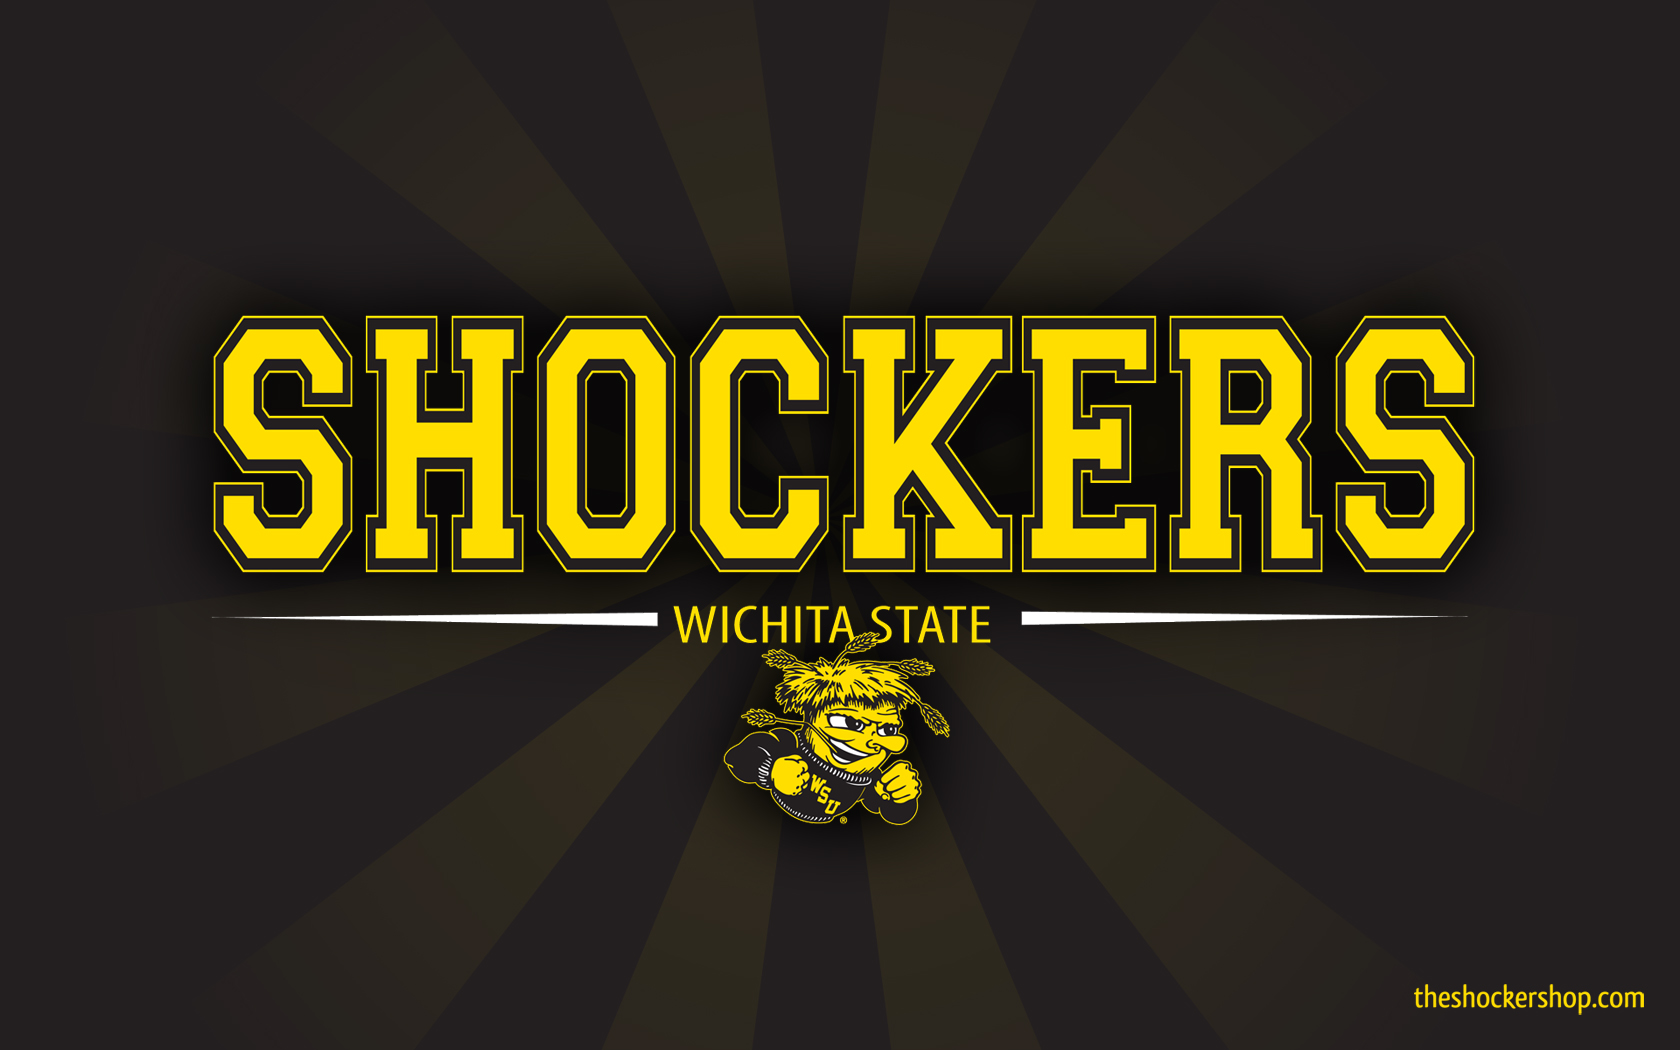 Good Night Hd Wallpaper 3d Love Download Wichita State Basketball Wallpaper Gallery